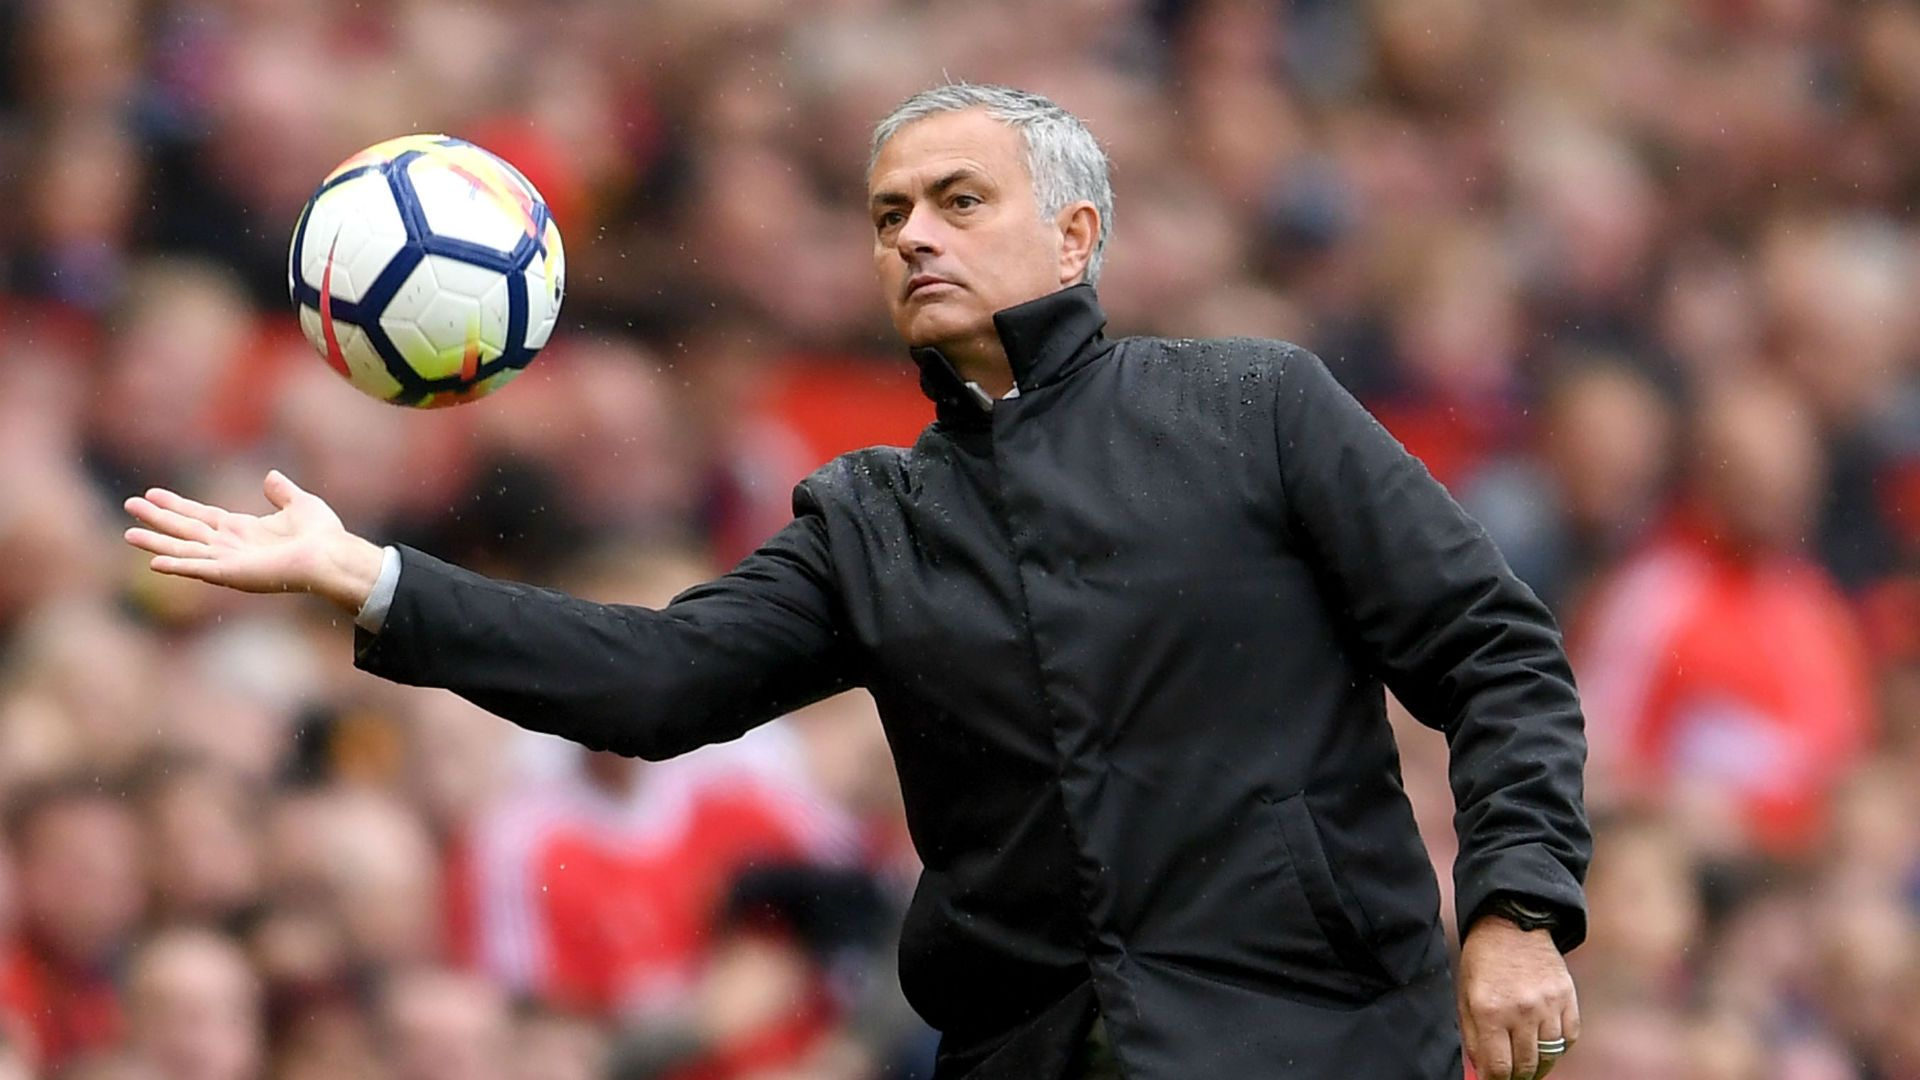 The Special One has six 'chosen ones' Blind says Man Utd